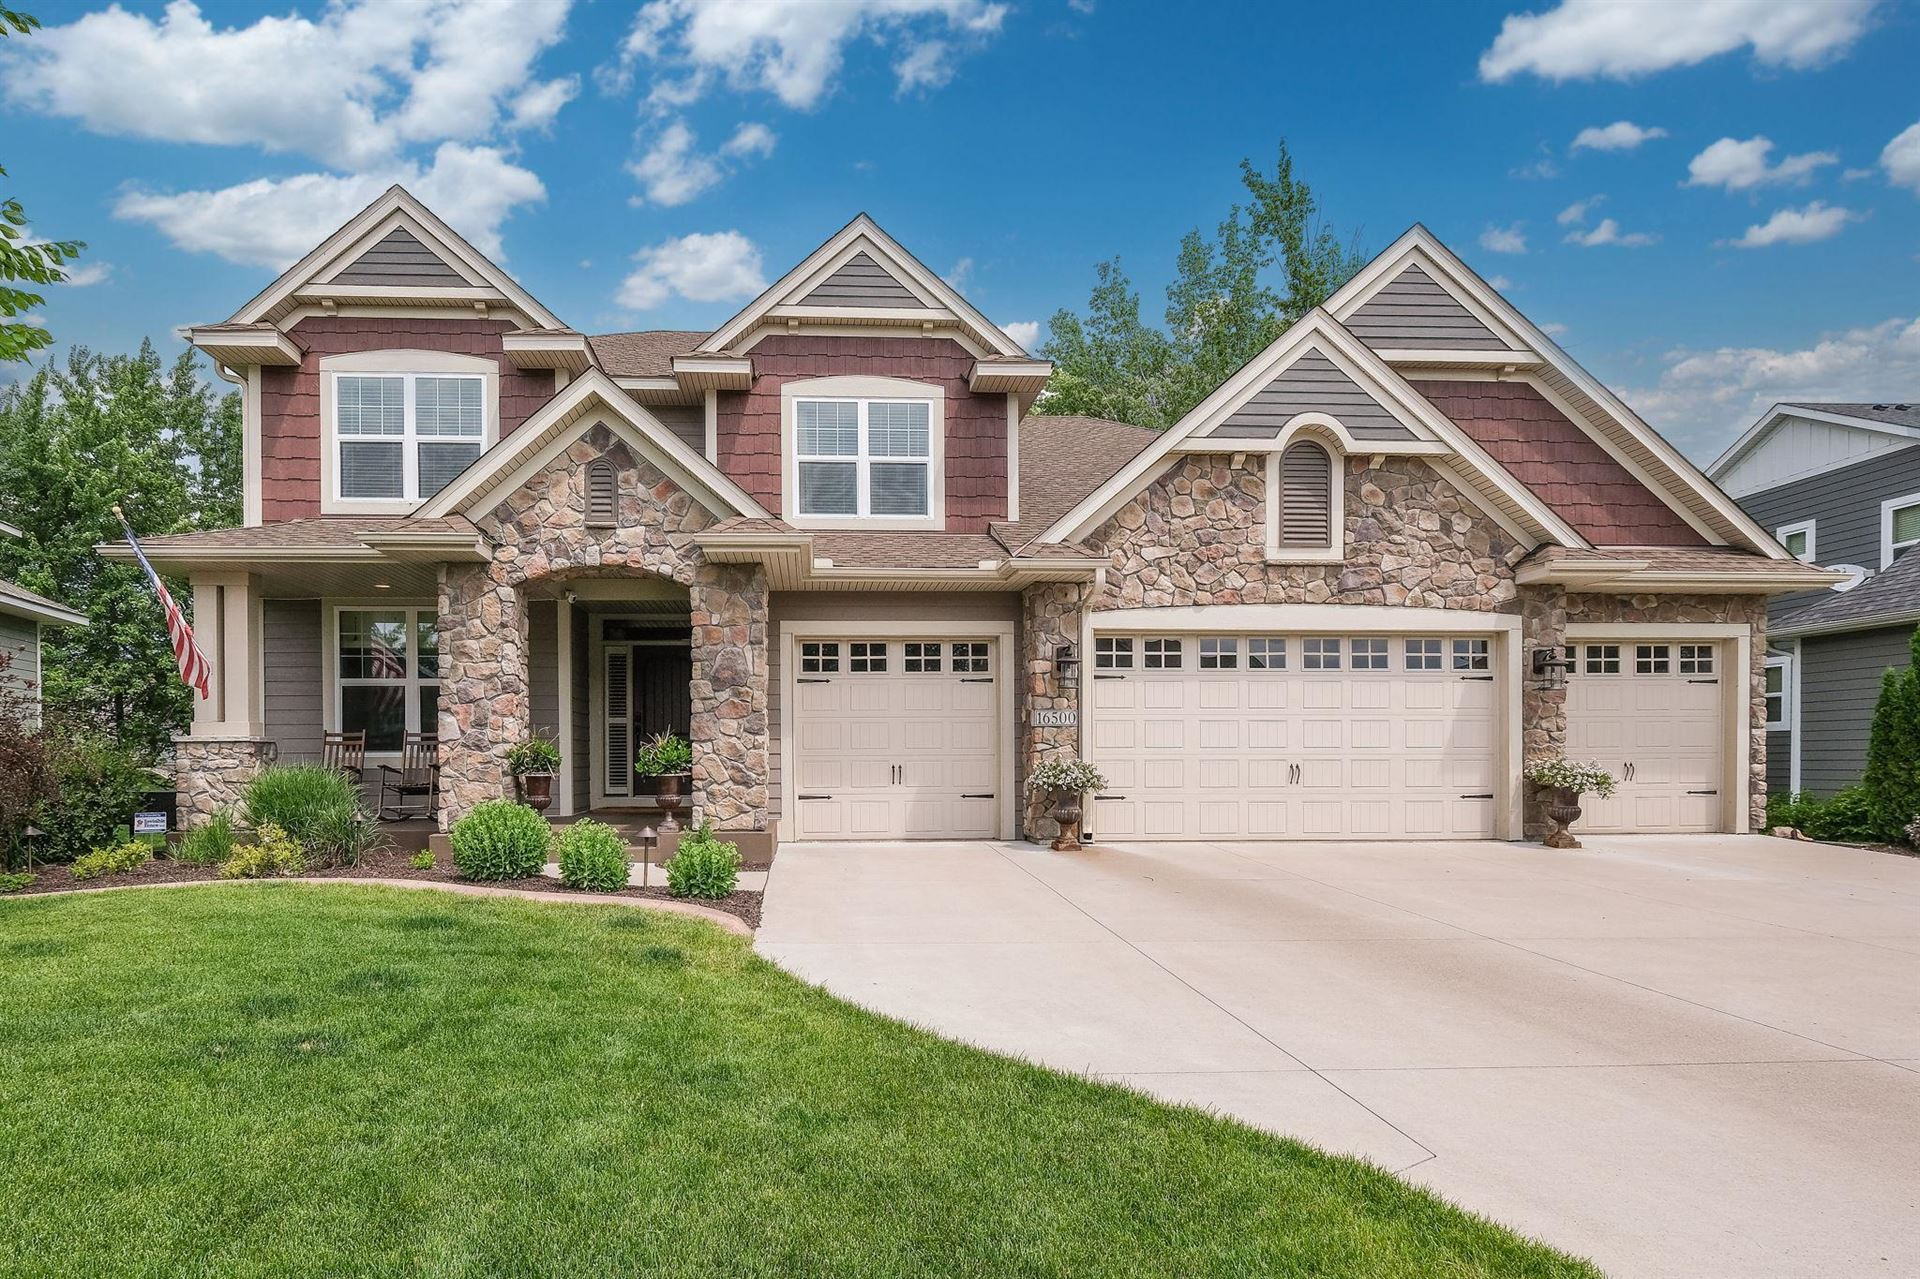 16500 52nd Avenue N, Plymouth, MN 55446 - #: 5616433